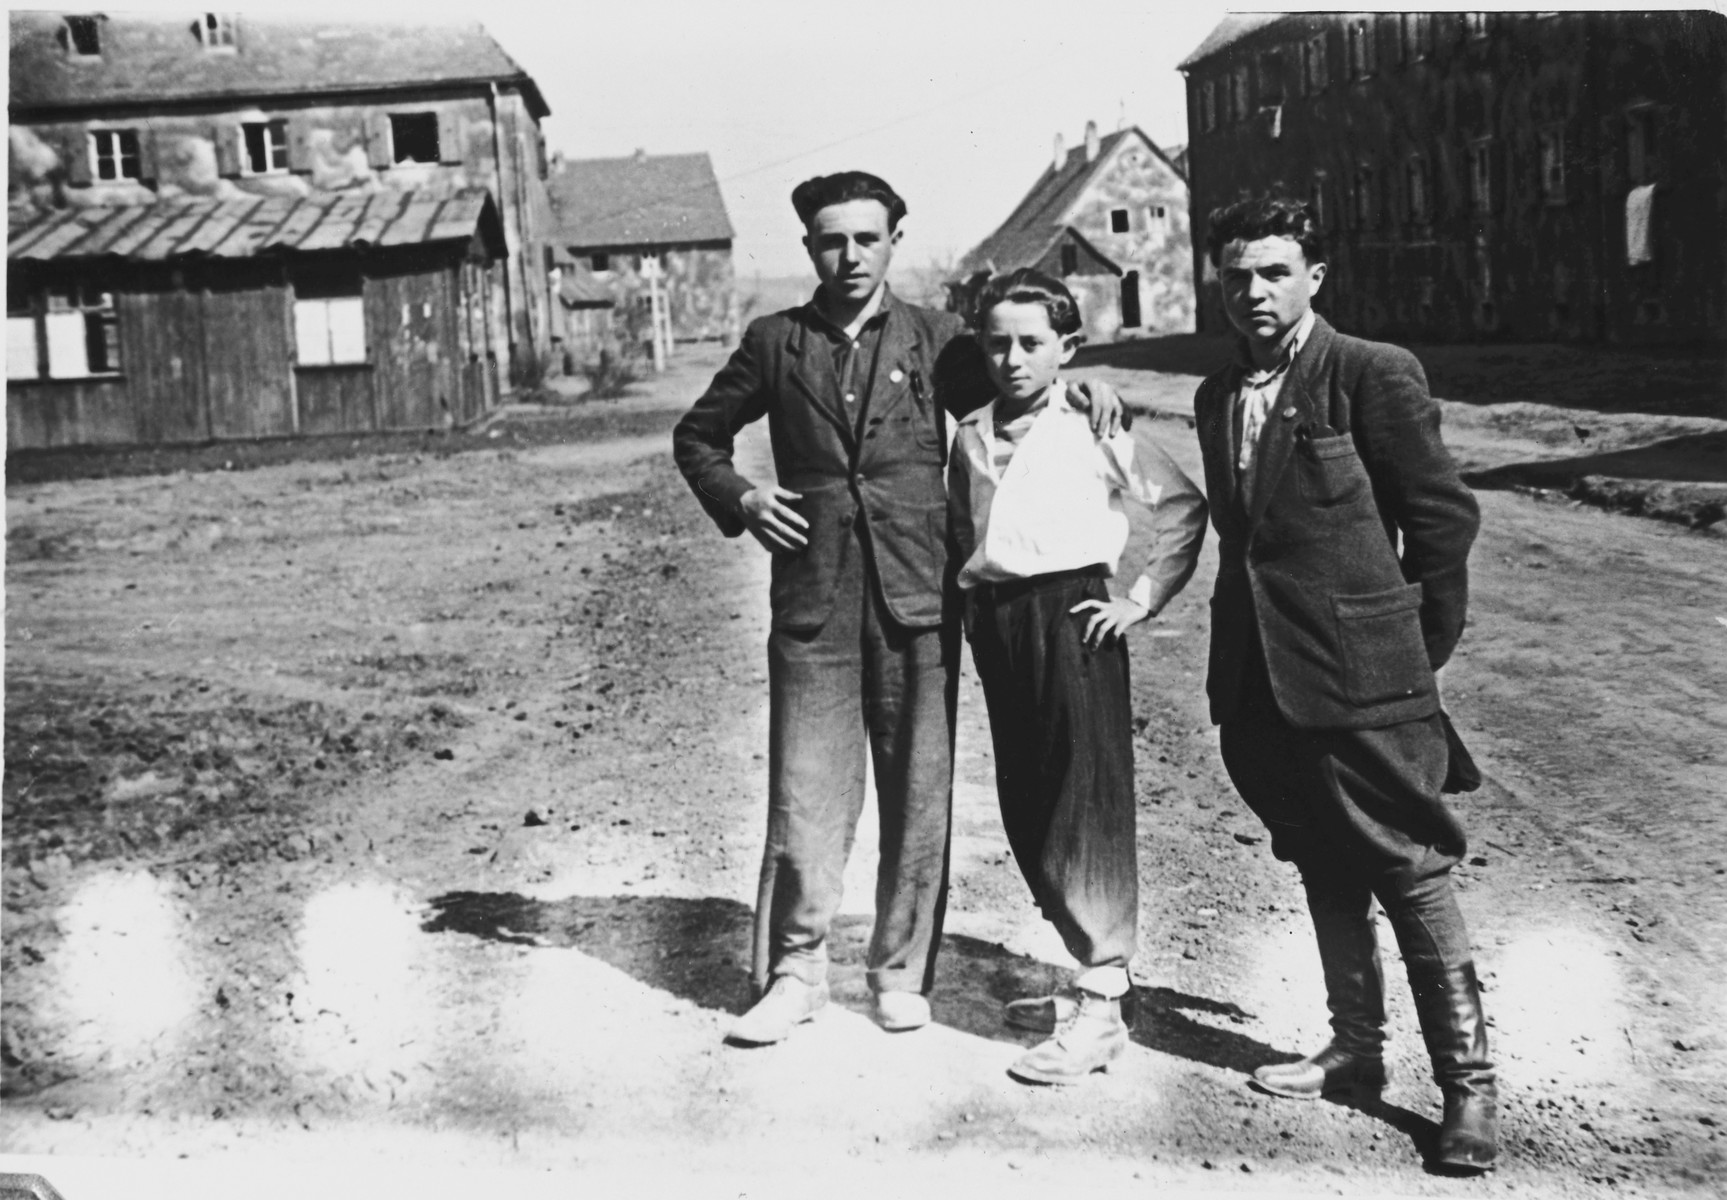 Three men pose together on a street of the Windsheim displaced persons' camp.